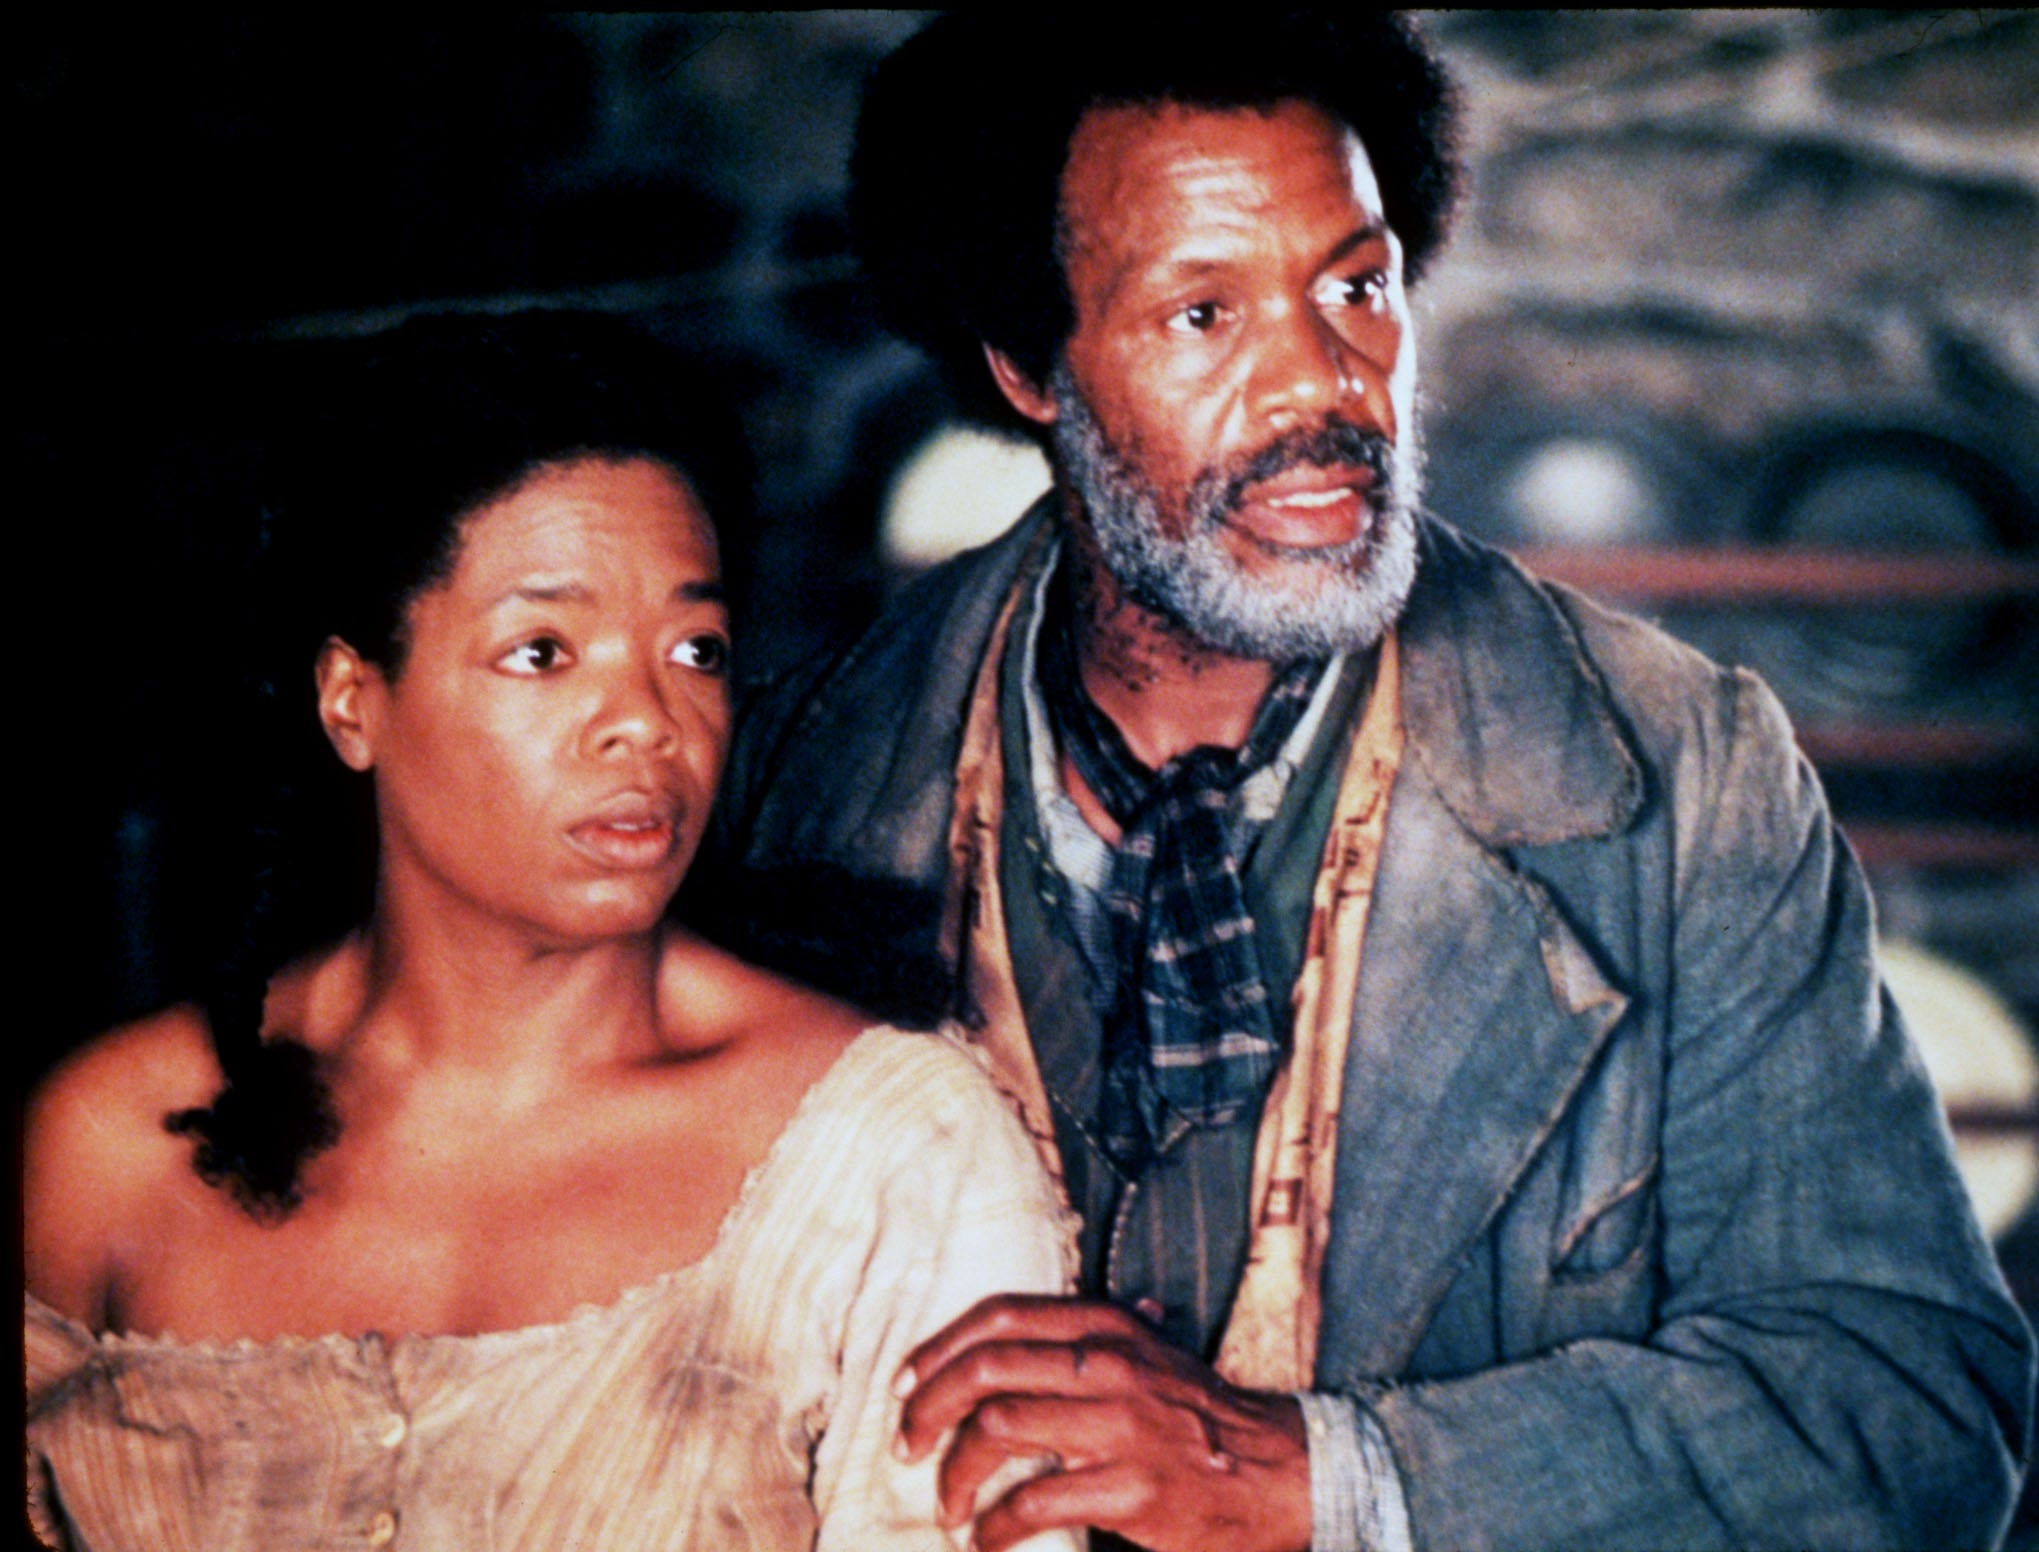 'Beloved' | Based on the 1987 Pulitzer Prize-winning novel of the same name by Toni Morrison, 'Beloved' was a passion project for Winfrey. She purchased the rights to the book soon after it was published, produced the film and starred in it. The 1998 film was directed by Jonathan Demme ('The Silence of the Lambs'), and followed the story of Sethe (Winfrey), a former slave rattled by the spirit of her dead daughter. Here, Sethe (Winfrey) stands close to her friend Paul (played by Danny Glover).